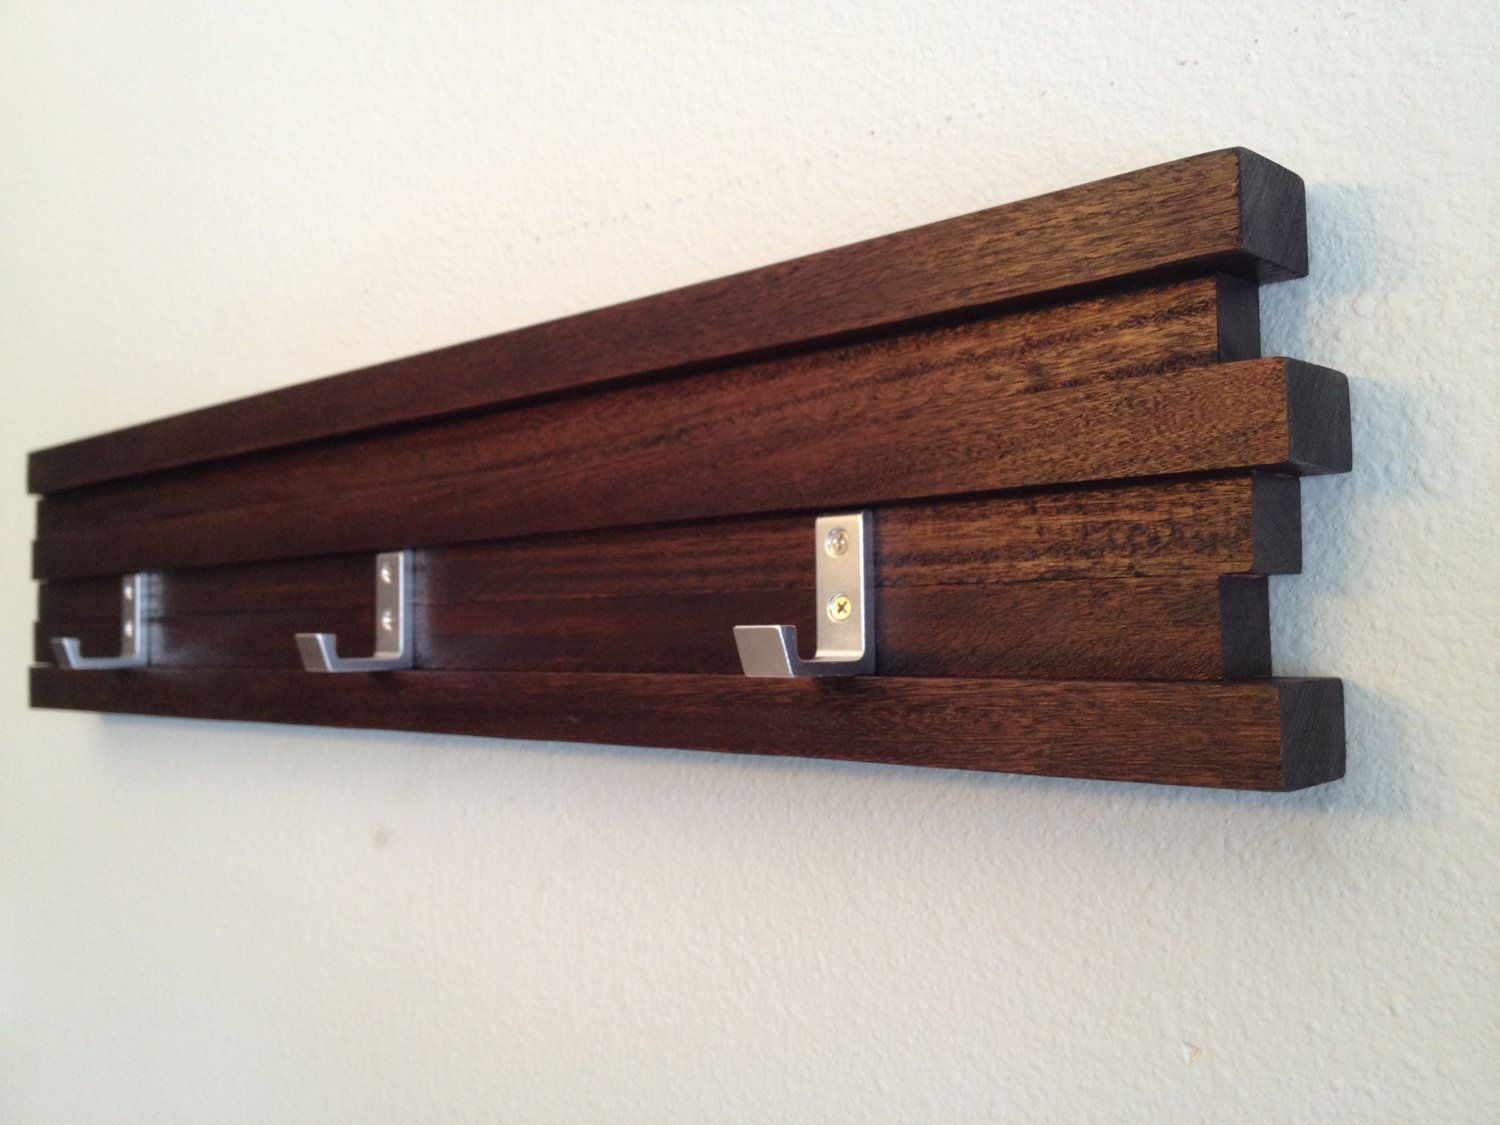 Wall hook 12 key rack 3 hook modern wall hanging w 3 hooks dark espresso finish 36 00 via etsy